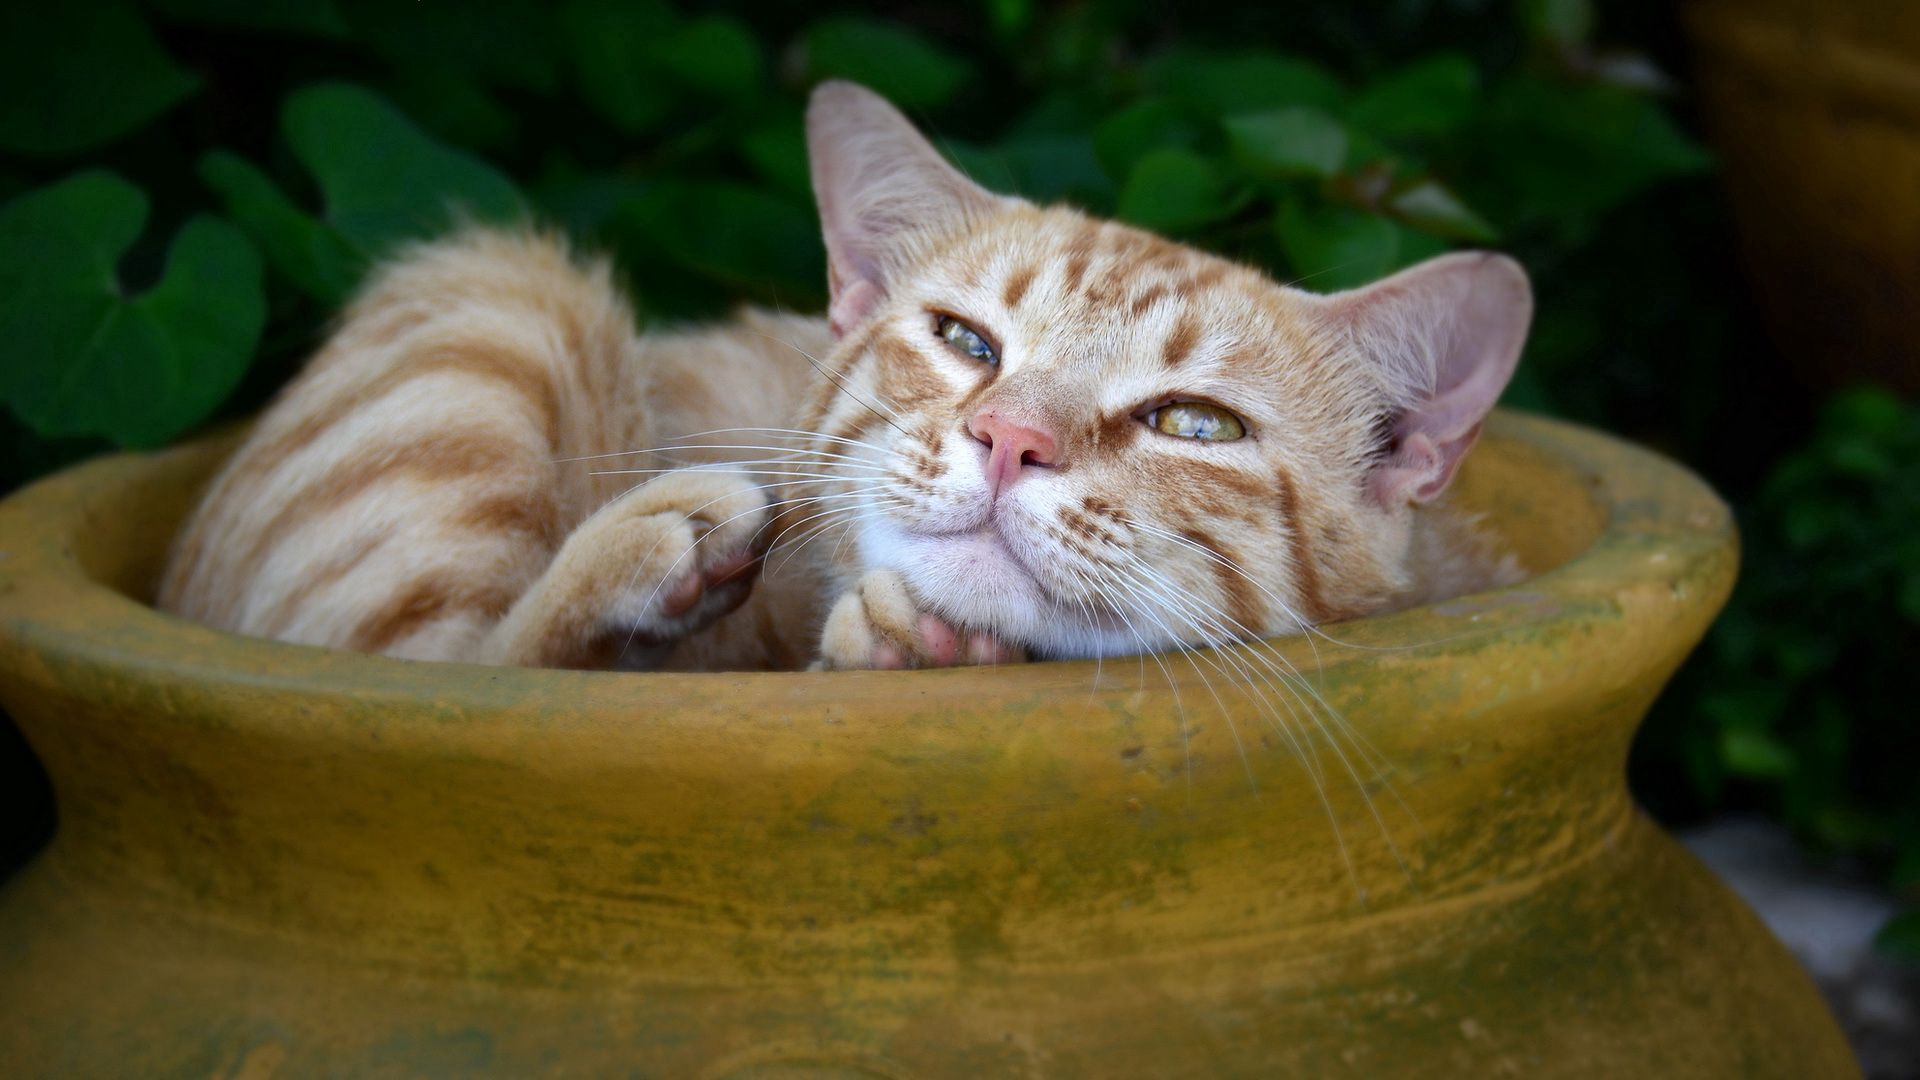 156945 download wallpaper Animals, Cat, Redhead, Striped, Jug, To Lie Down, Lie screensavers and pictures for free